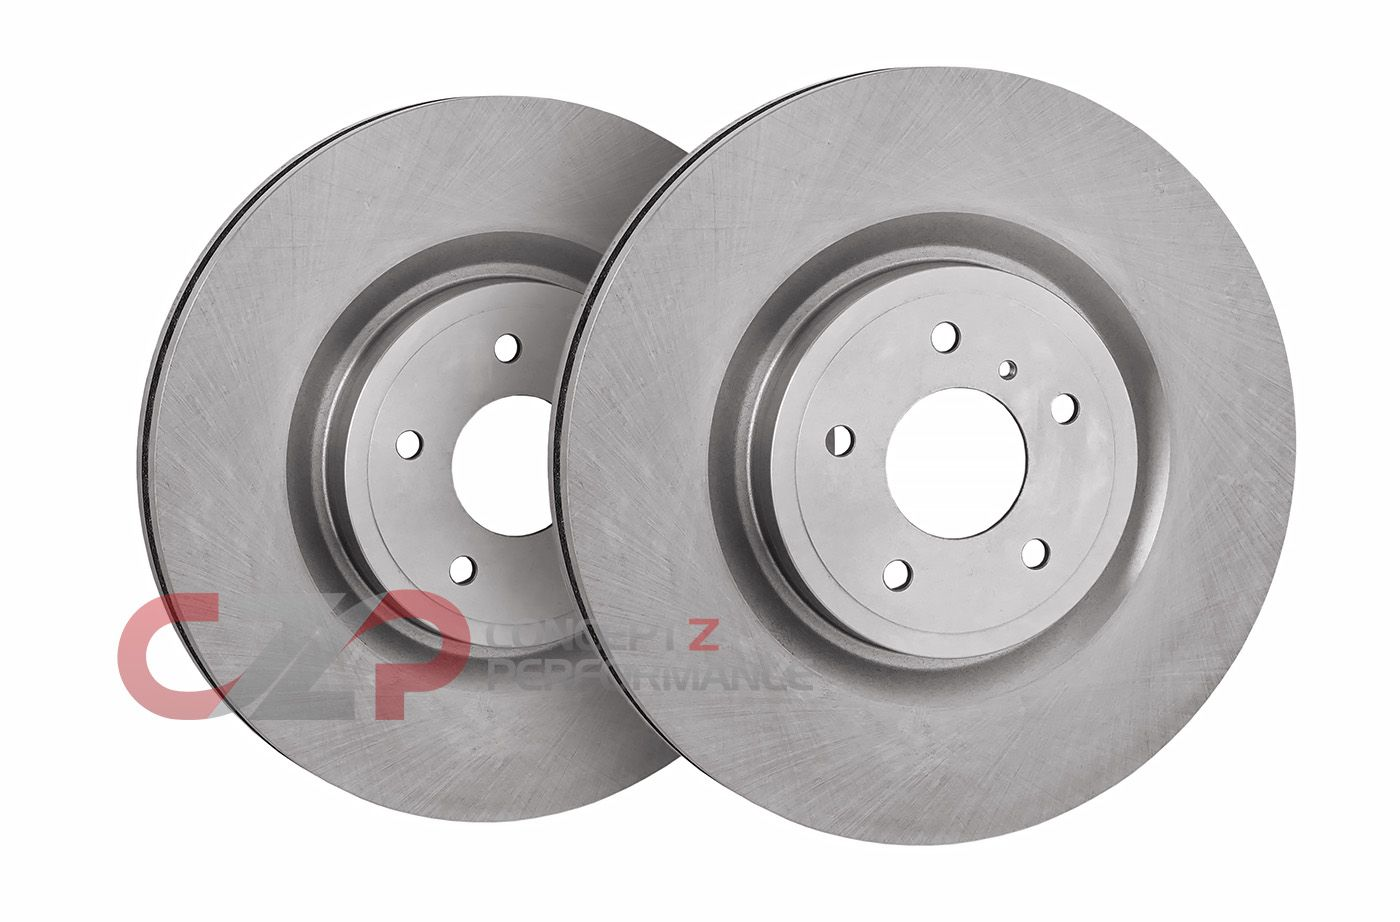 1996 Fits Nissan 300ZX Turbo//Non-Turbo OE Replacement Rotors w//Ceramic Pads F+R